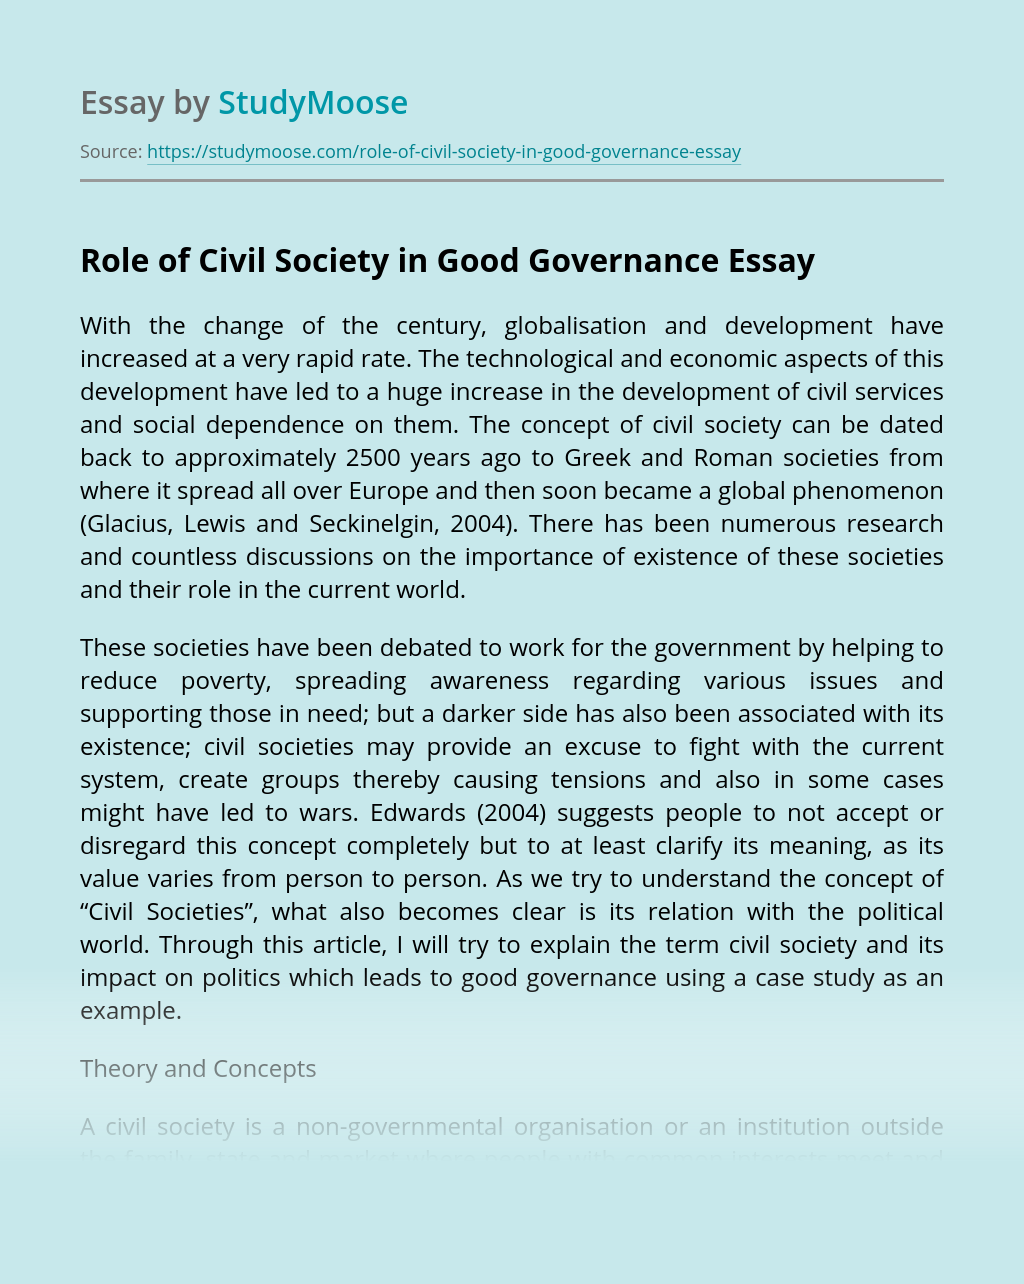 Role of Civil Society in Good Governance